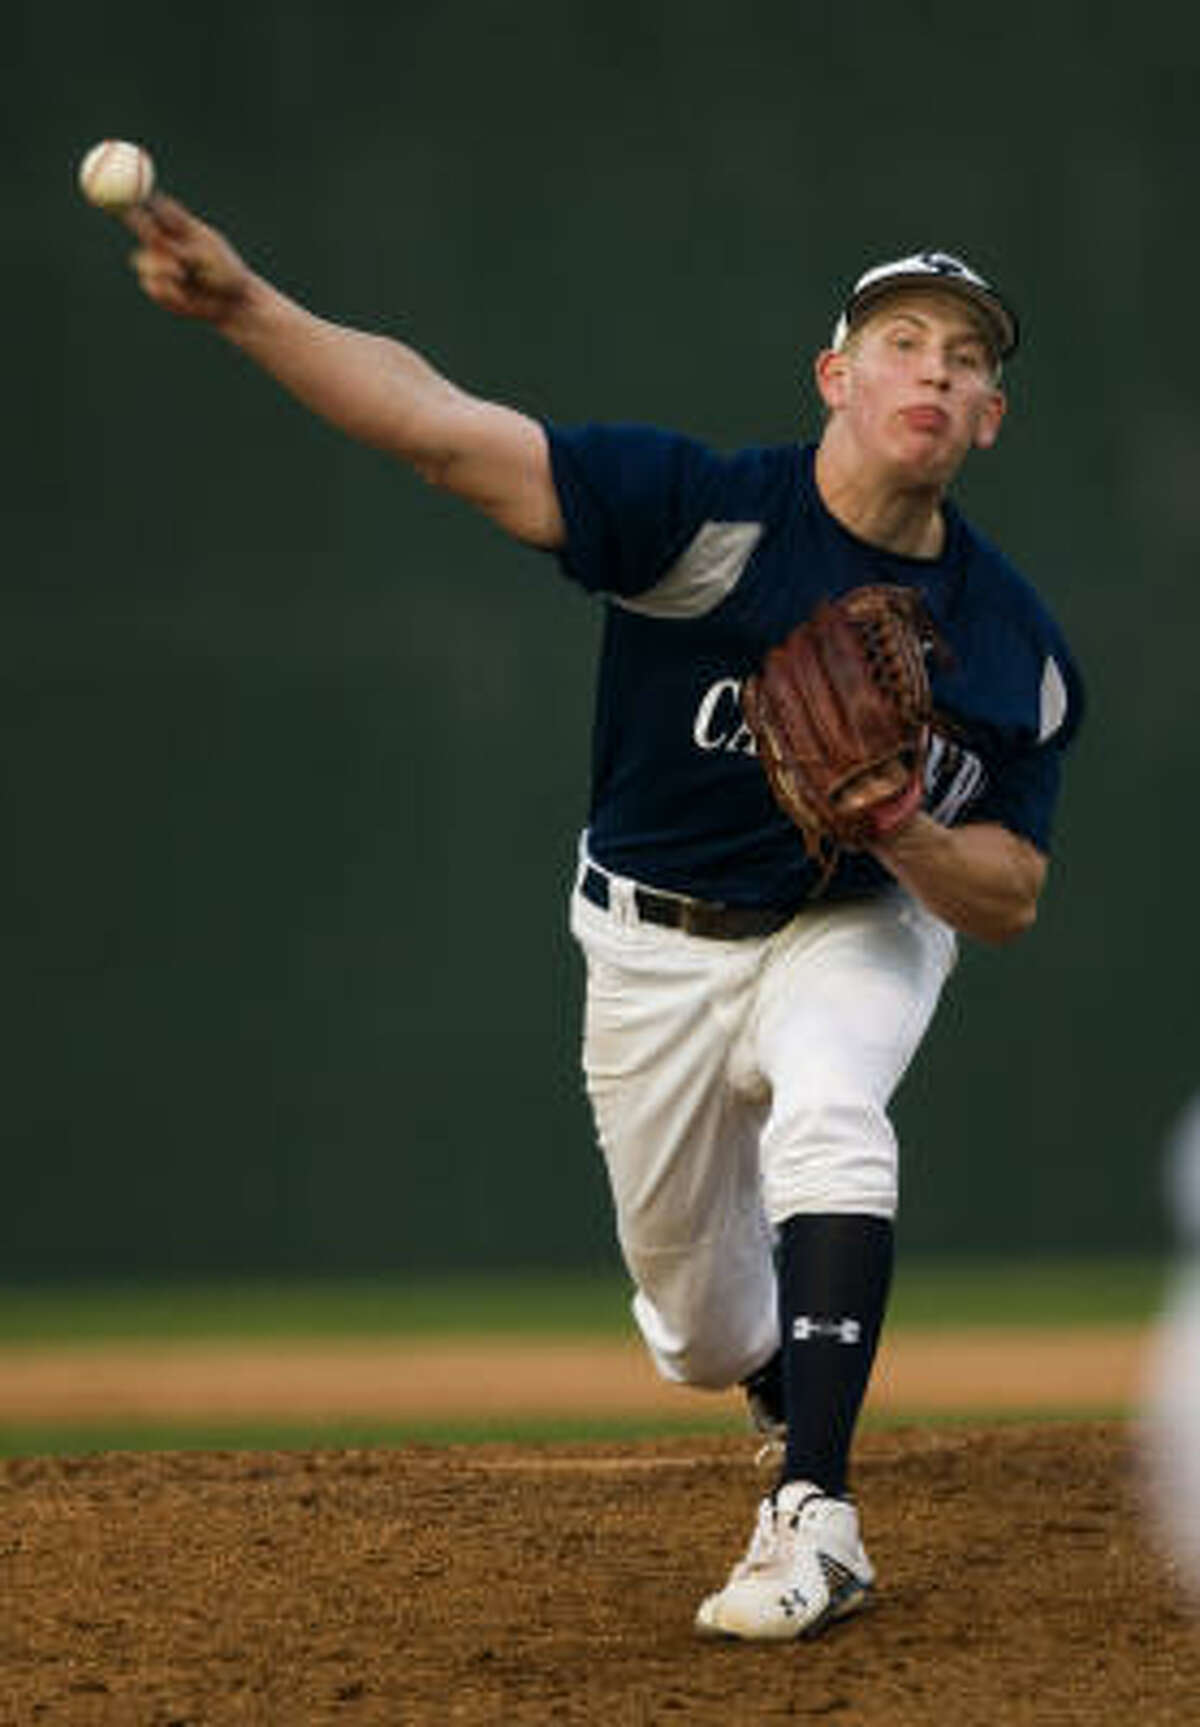 John Simms, Sr., P, College Park The Rice signee was the District 14-5A most valuable player and went 8-1 with a 1.07 ERA. He struck out 123 batters in 65 1/3 innings, while also hitting .370 at the plate.